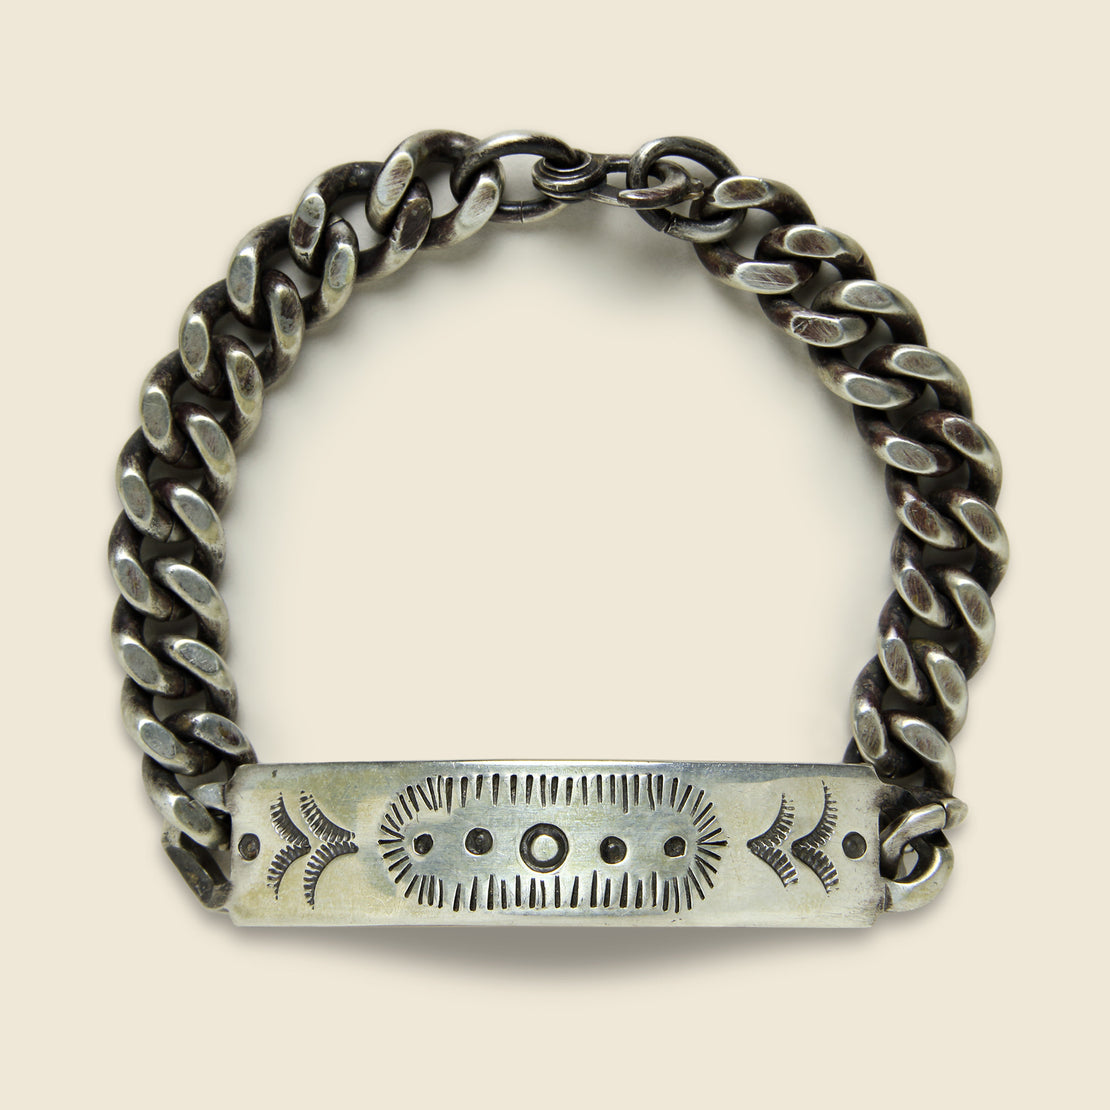 MANO Stamped Camp Bracelet - Sterling Silver